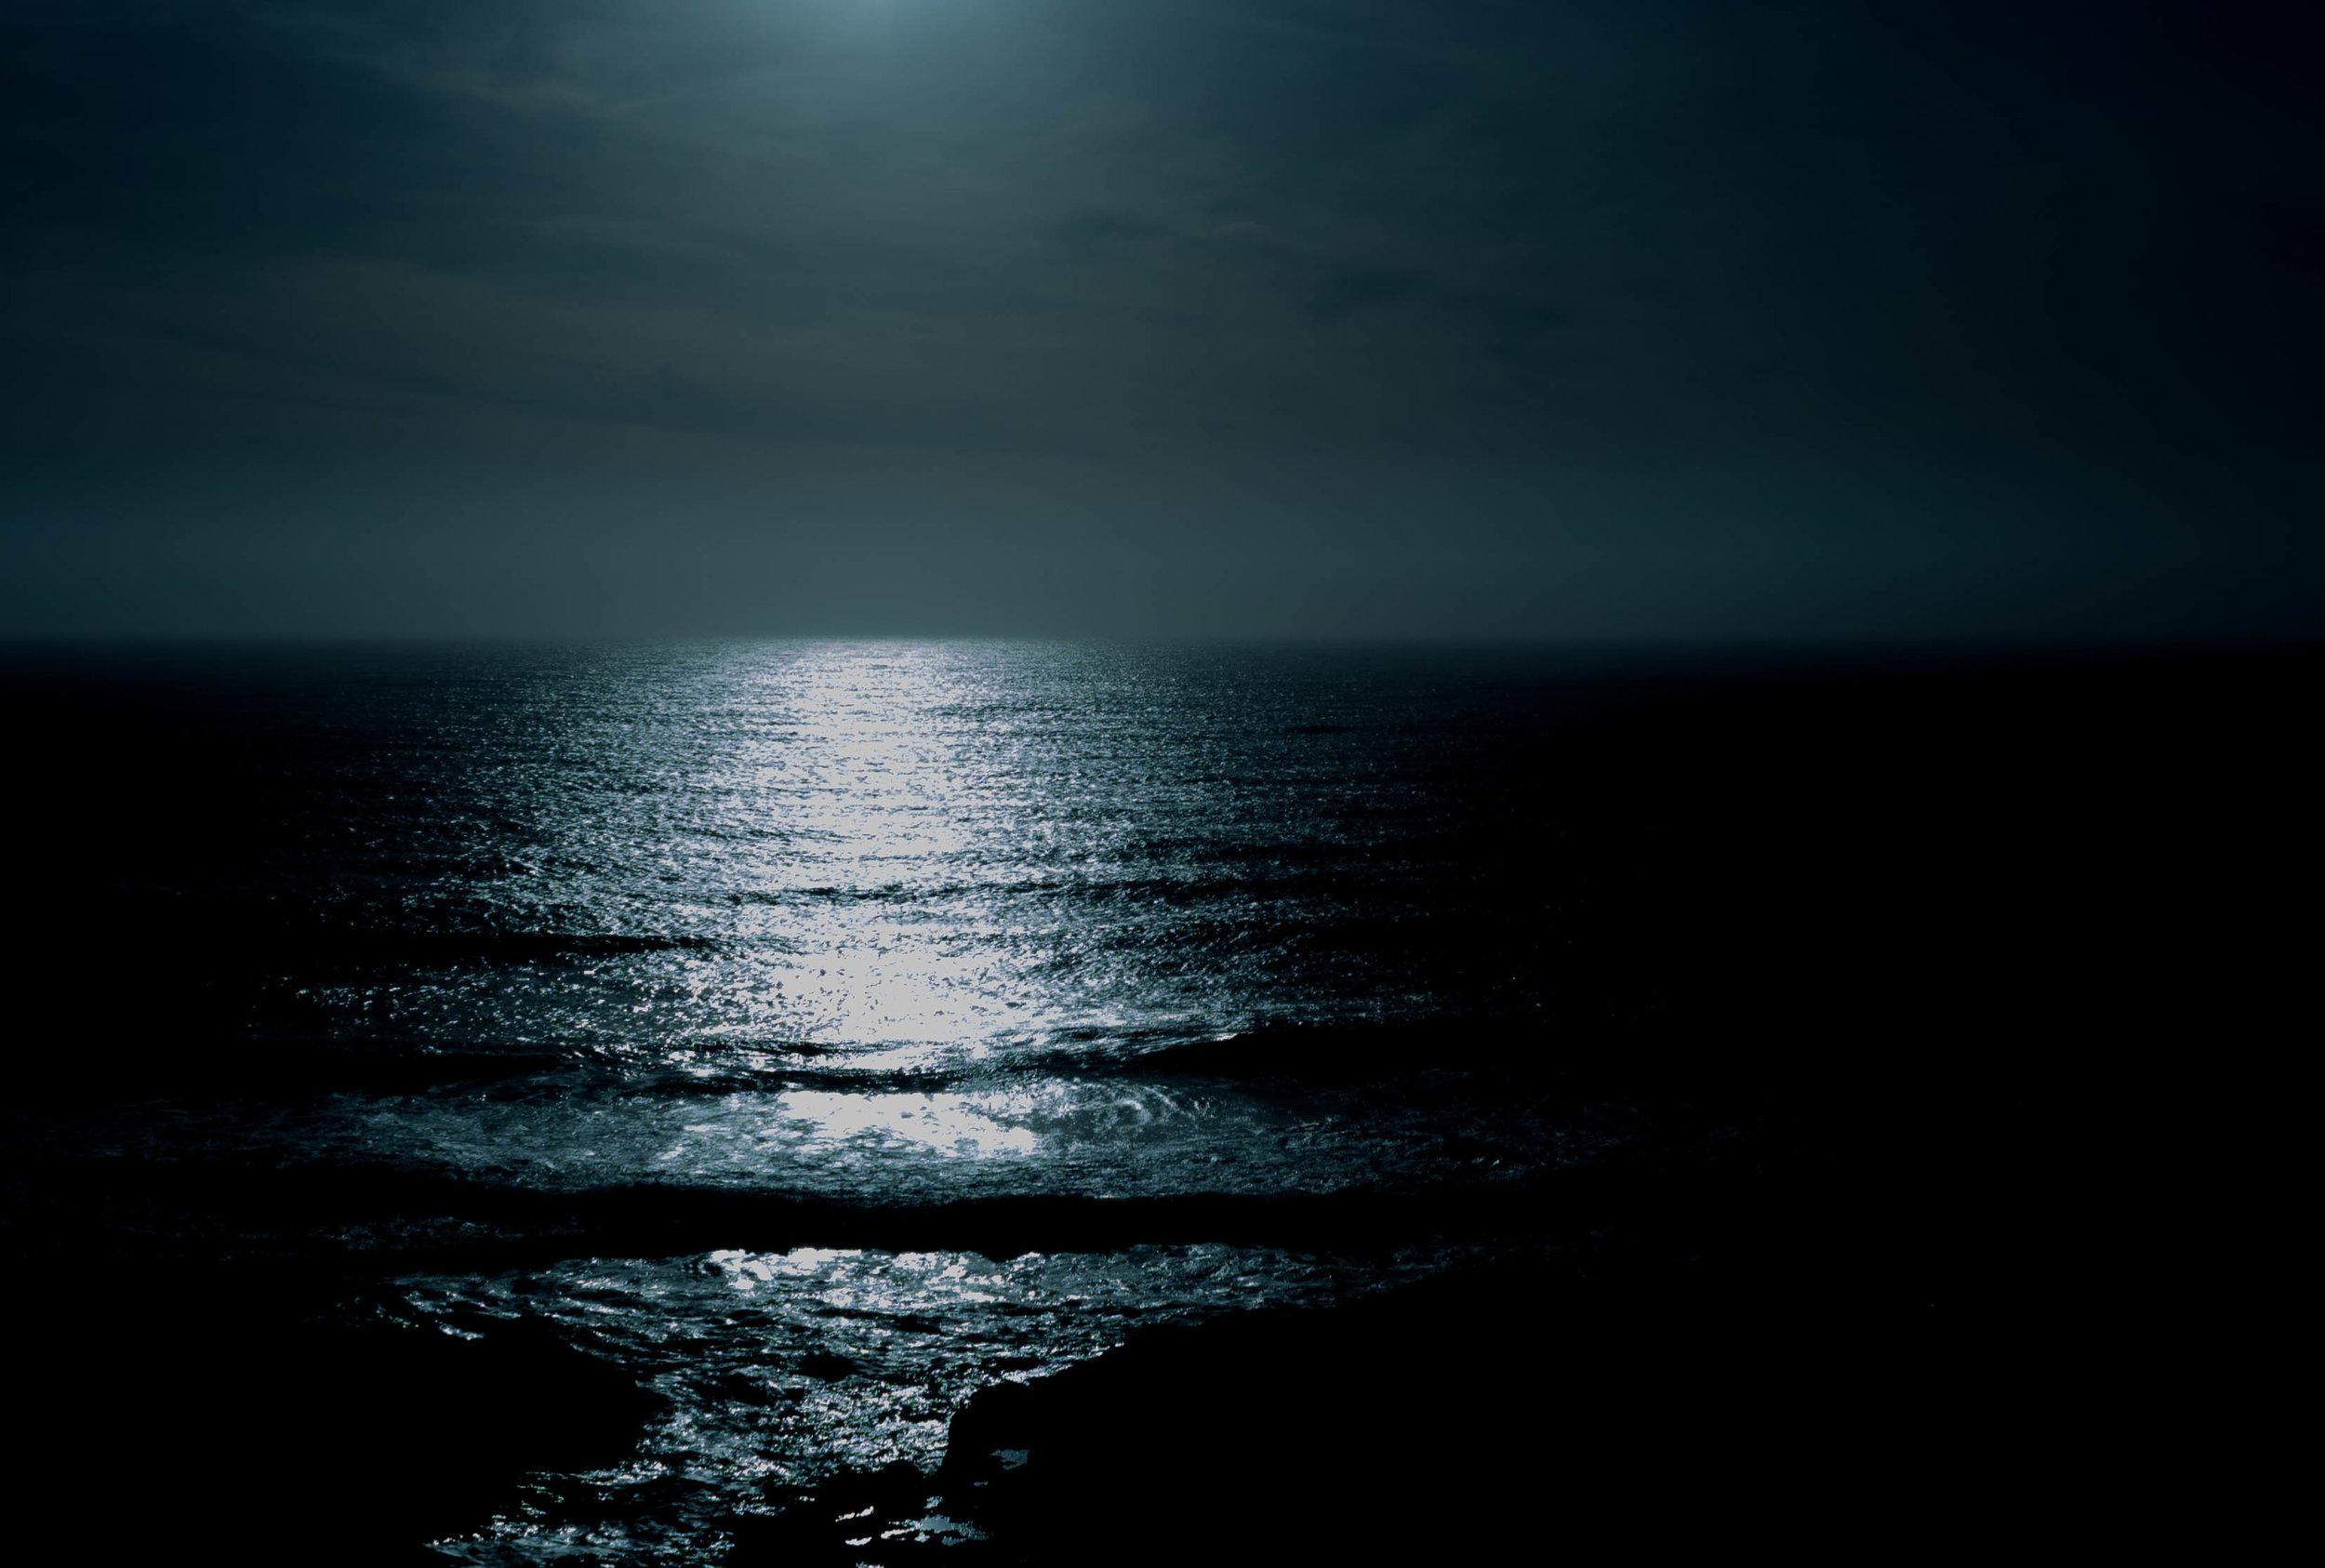 Without the moonlight reflecting off the ocean to guide them, it was mass chaos.